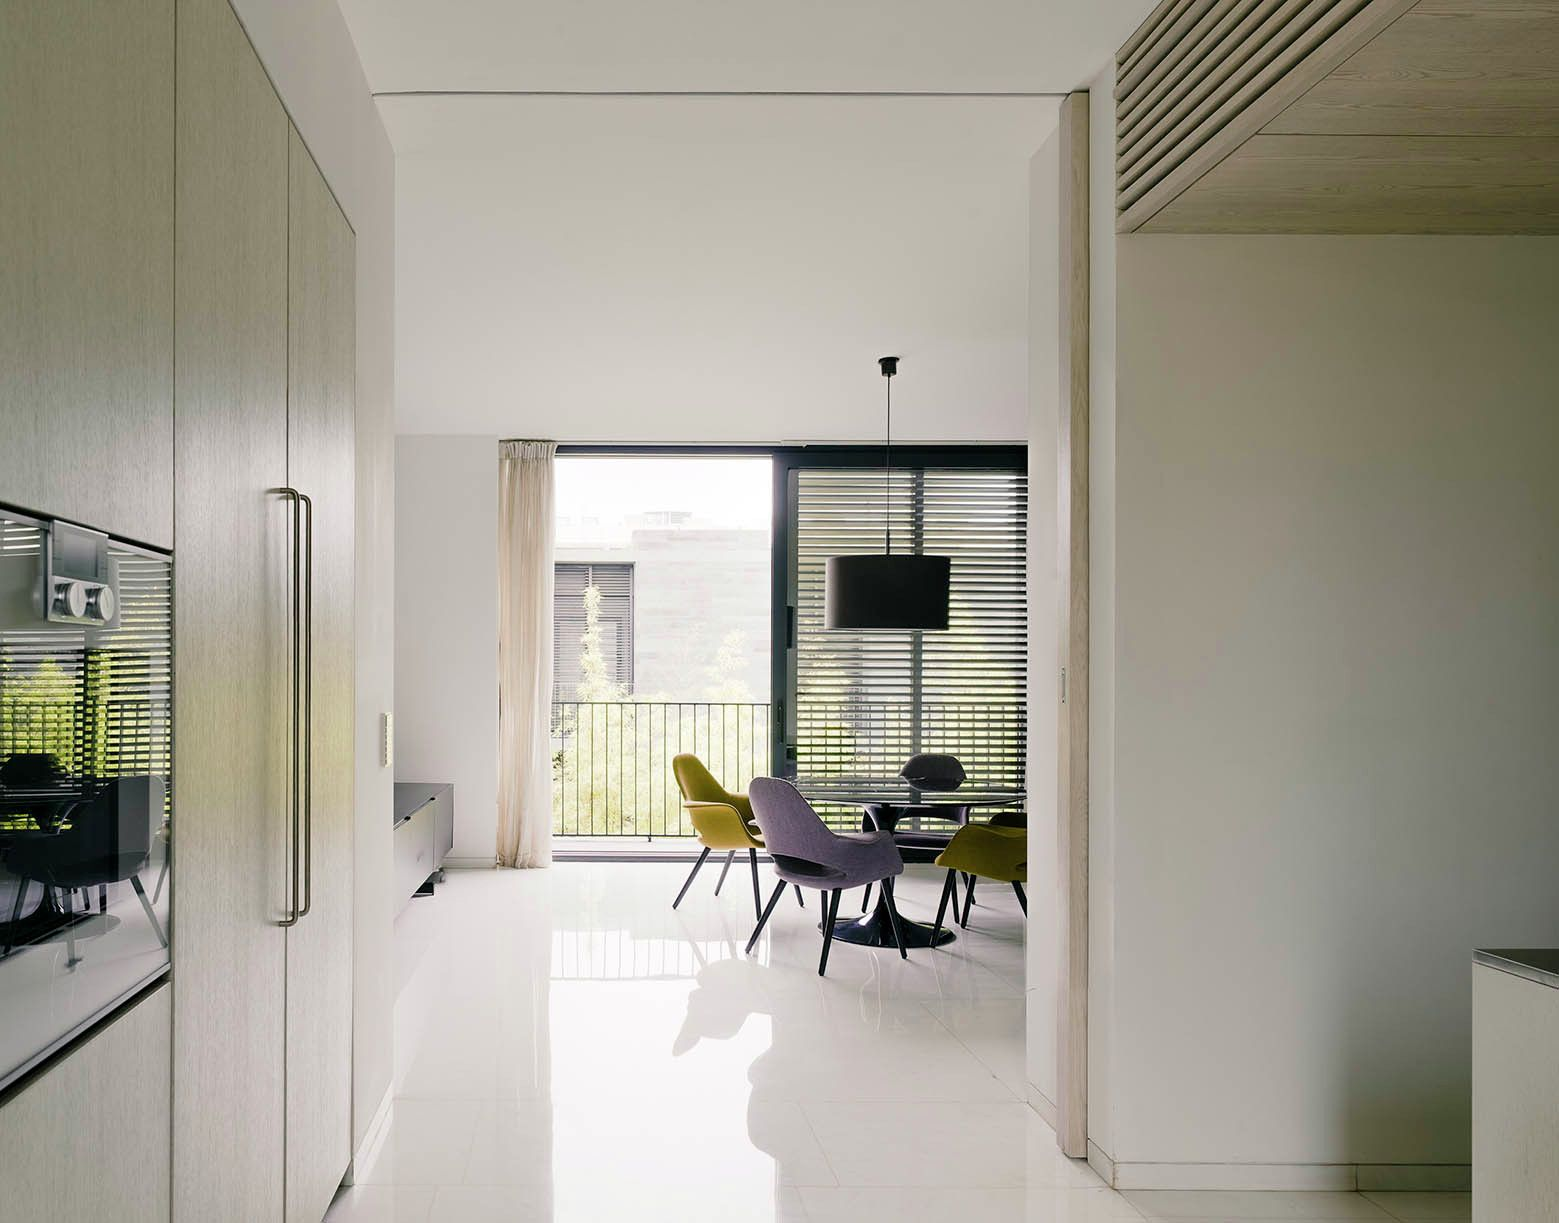 Image 14 of 27 from gallery of Xixi Wetland Estate / David Chipperfield Architects. Photograph by Simon Menges